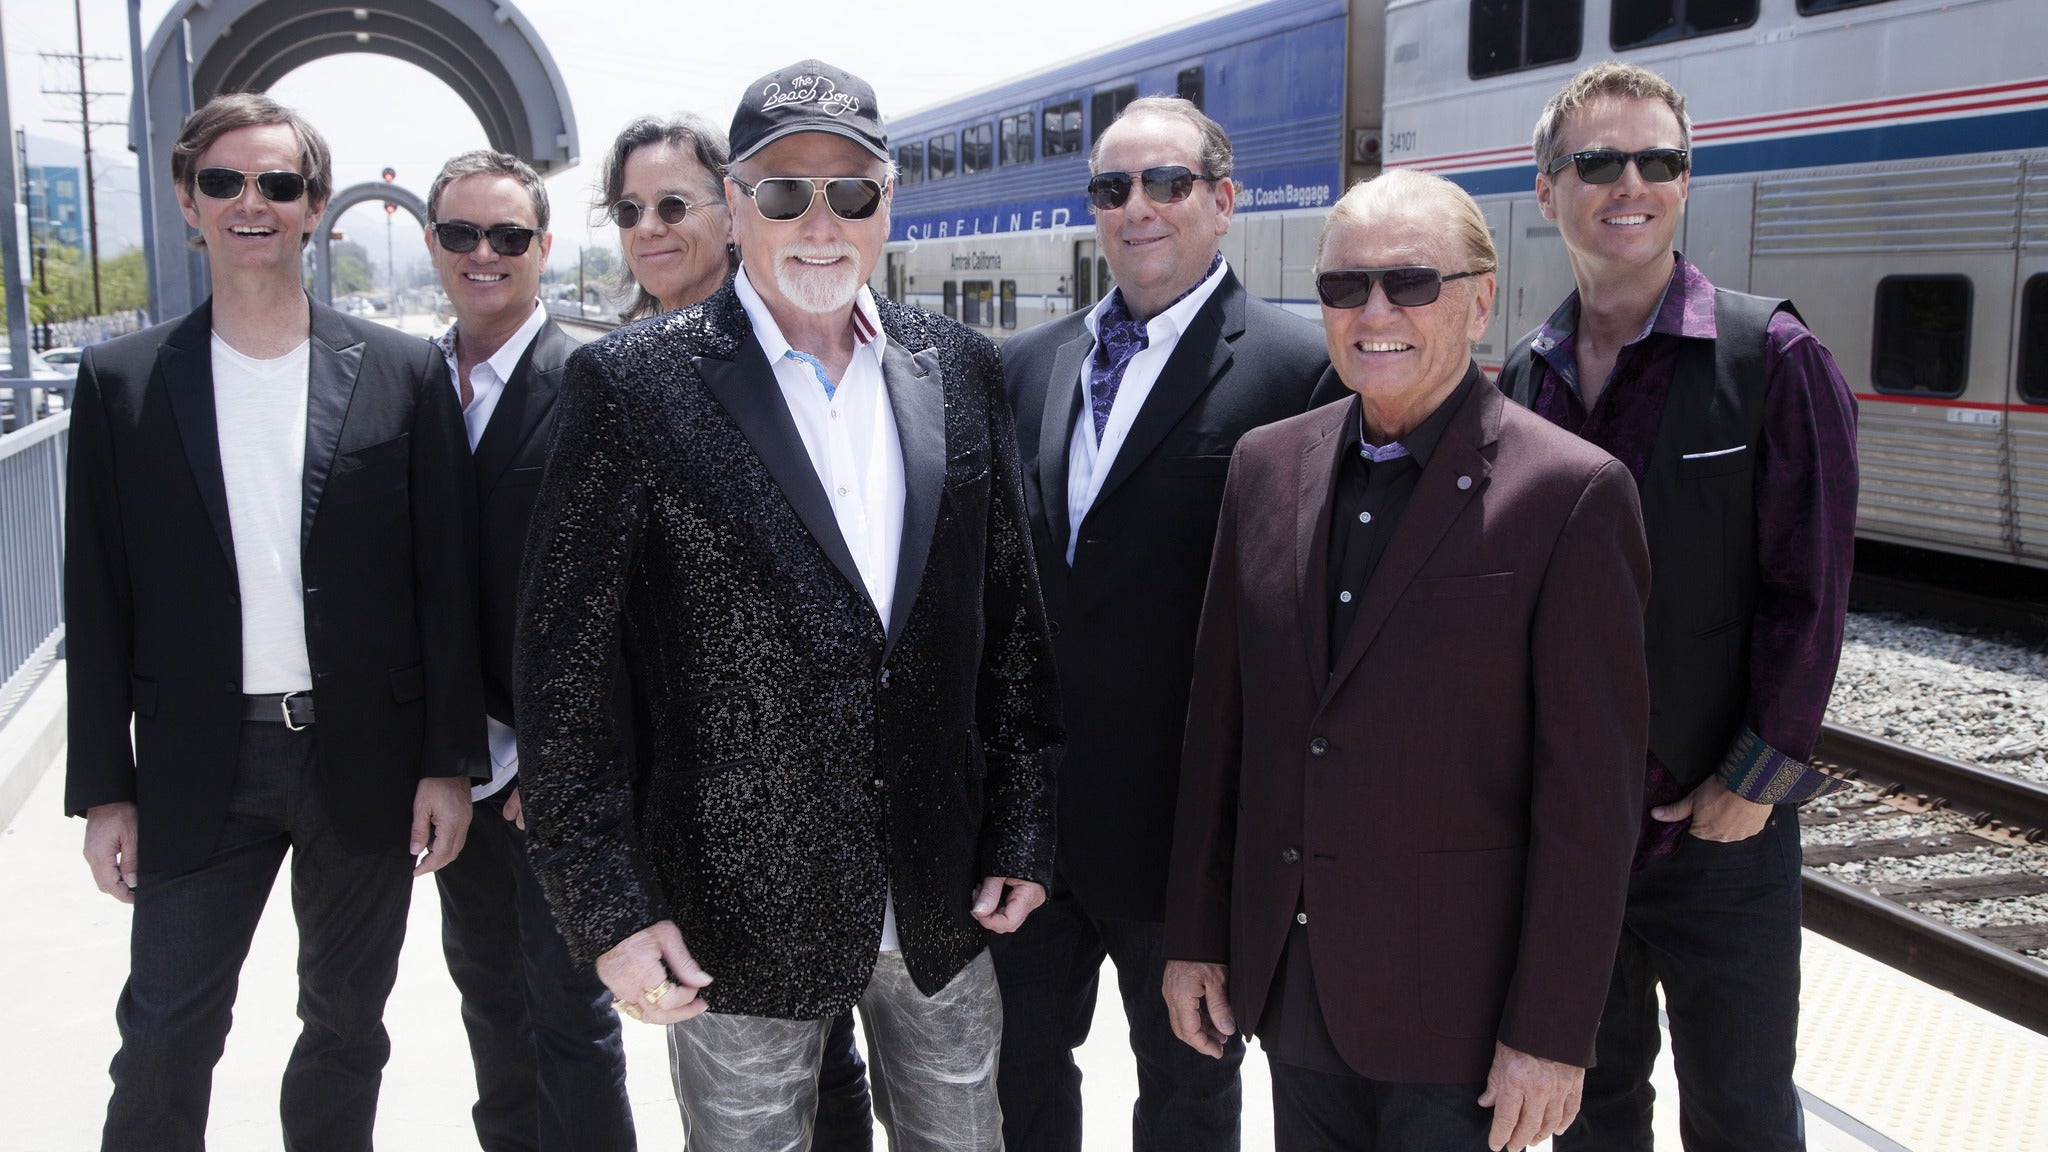 Beach Boys at Community Arts Center - PA